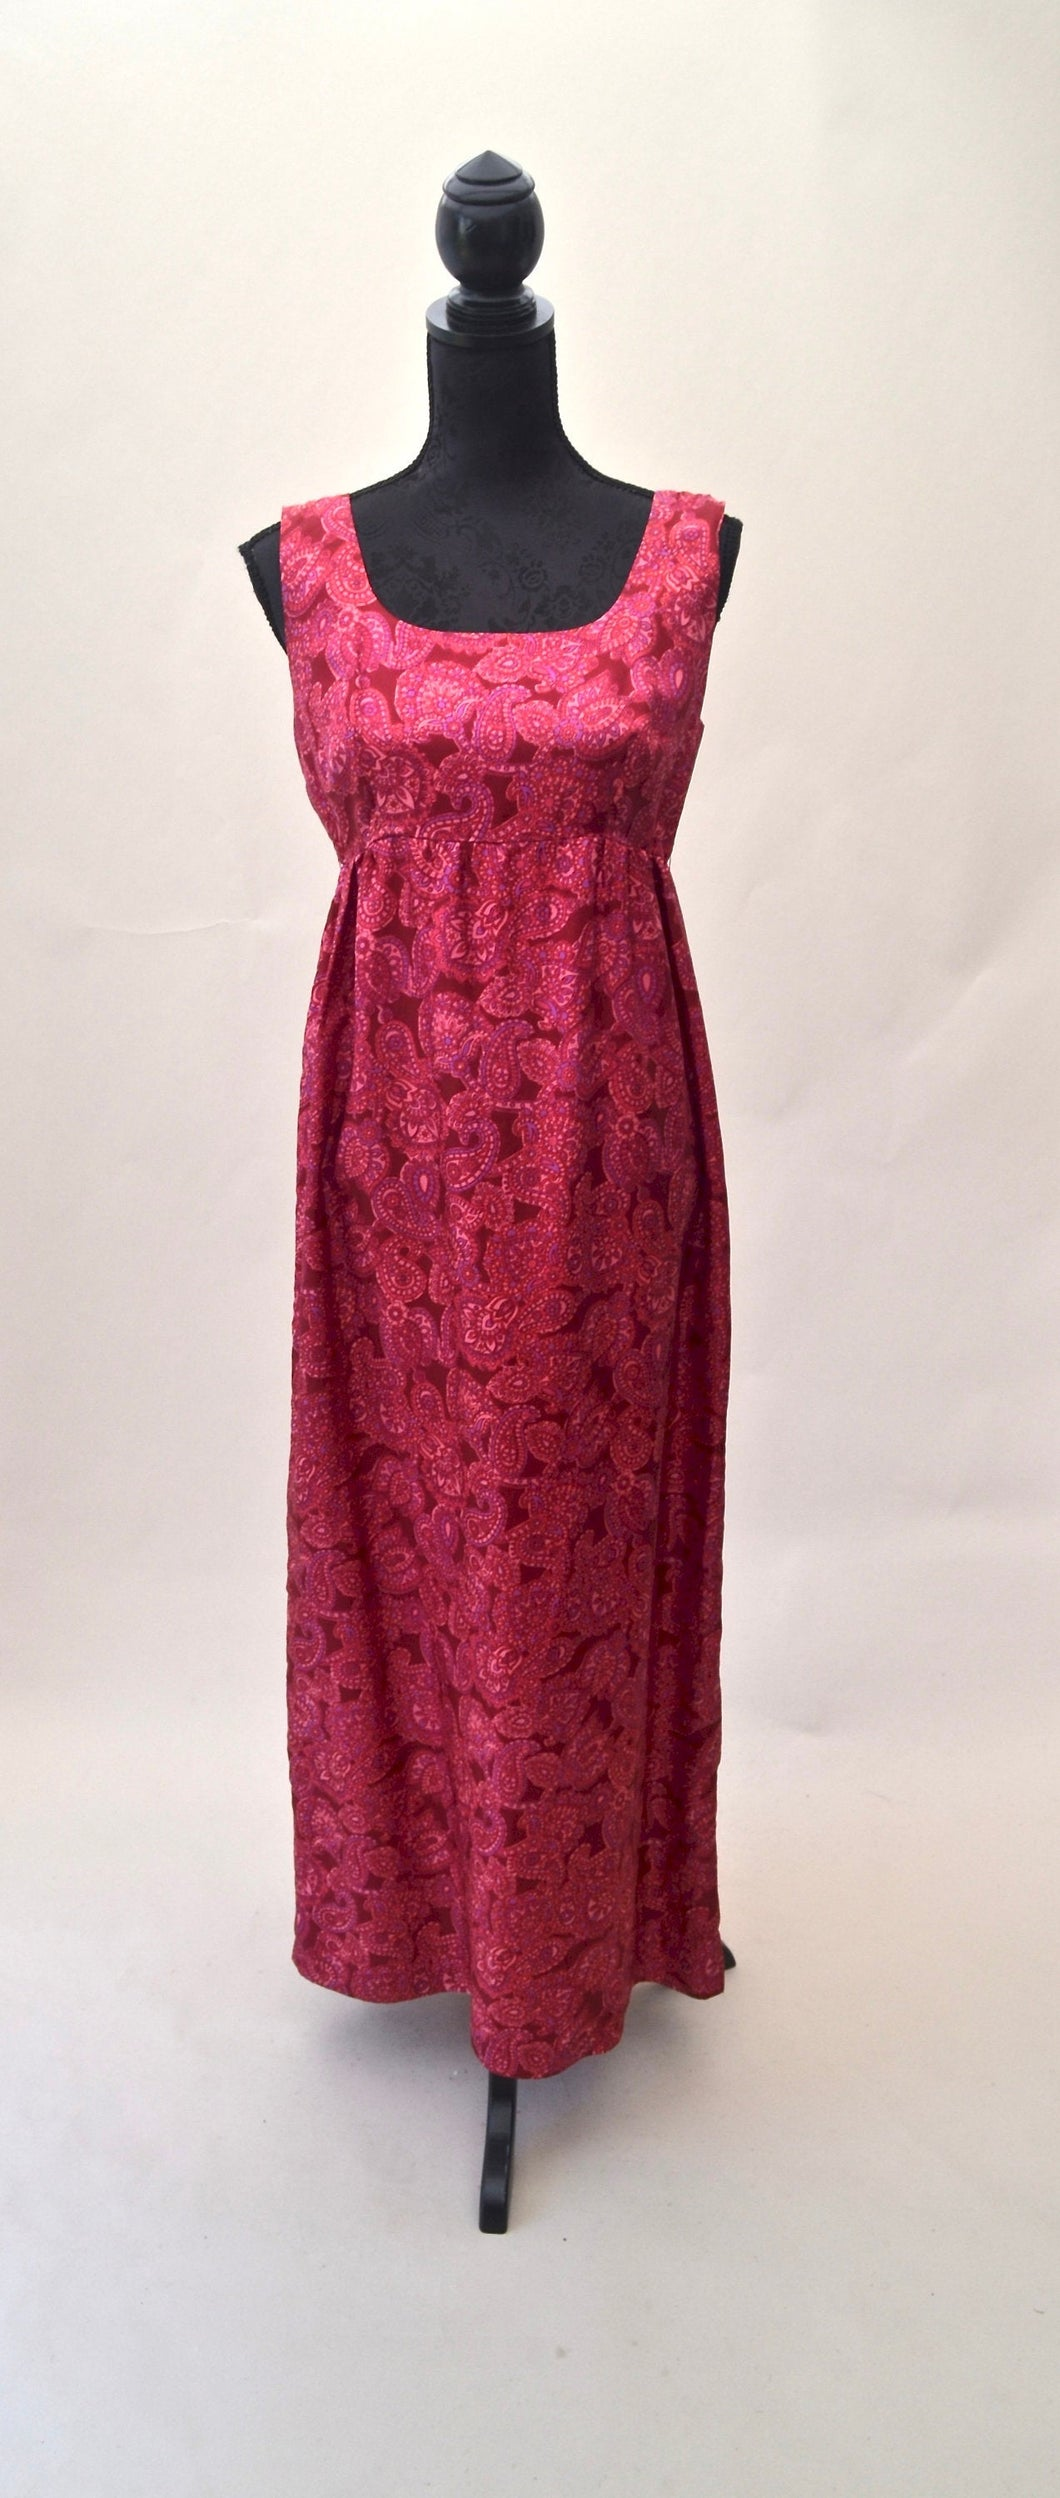 1970s long paisley patterned maxi dress in pinks | Est UK size 8/10